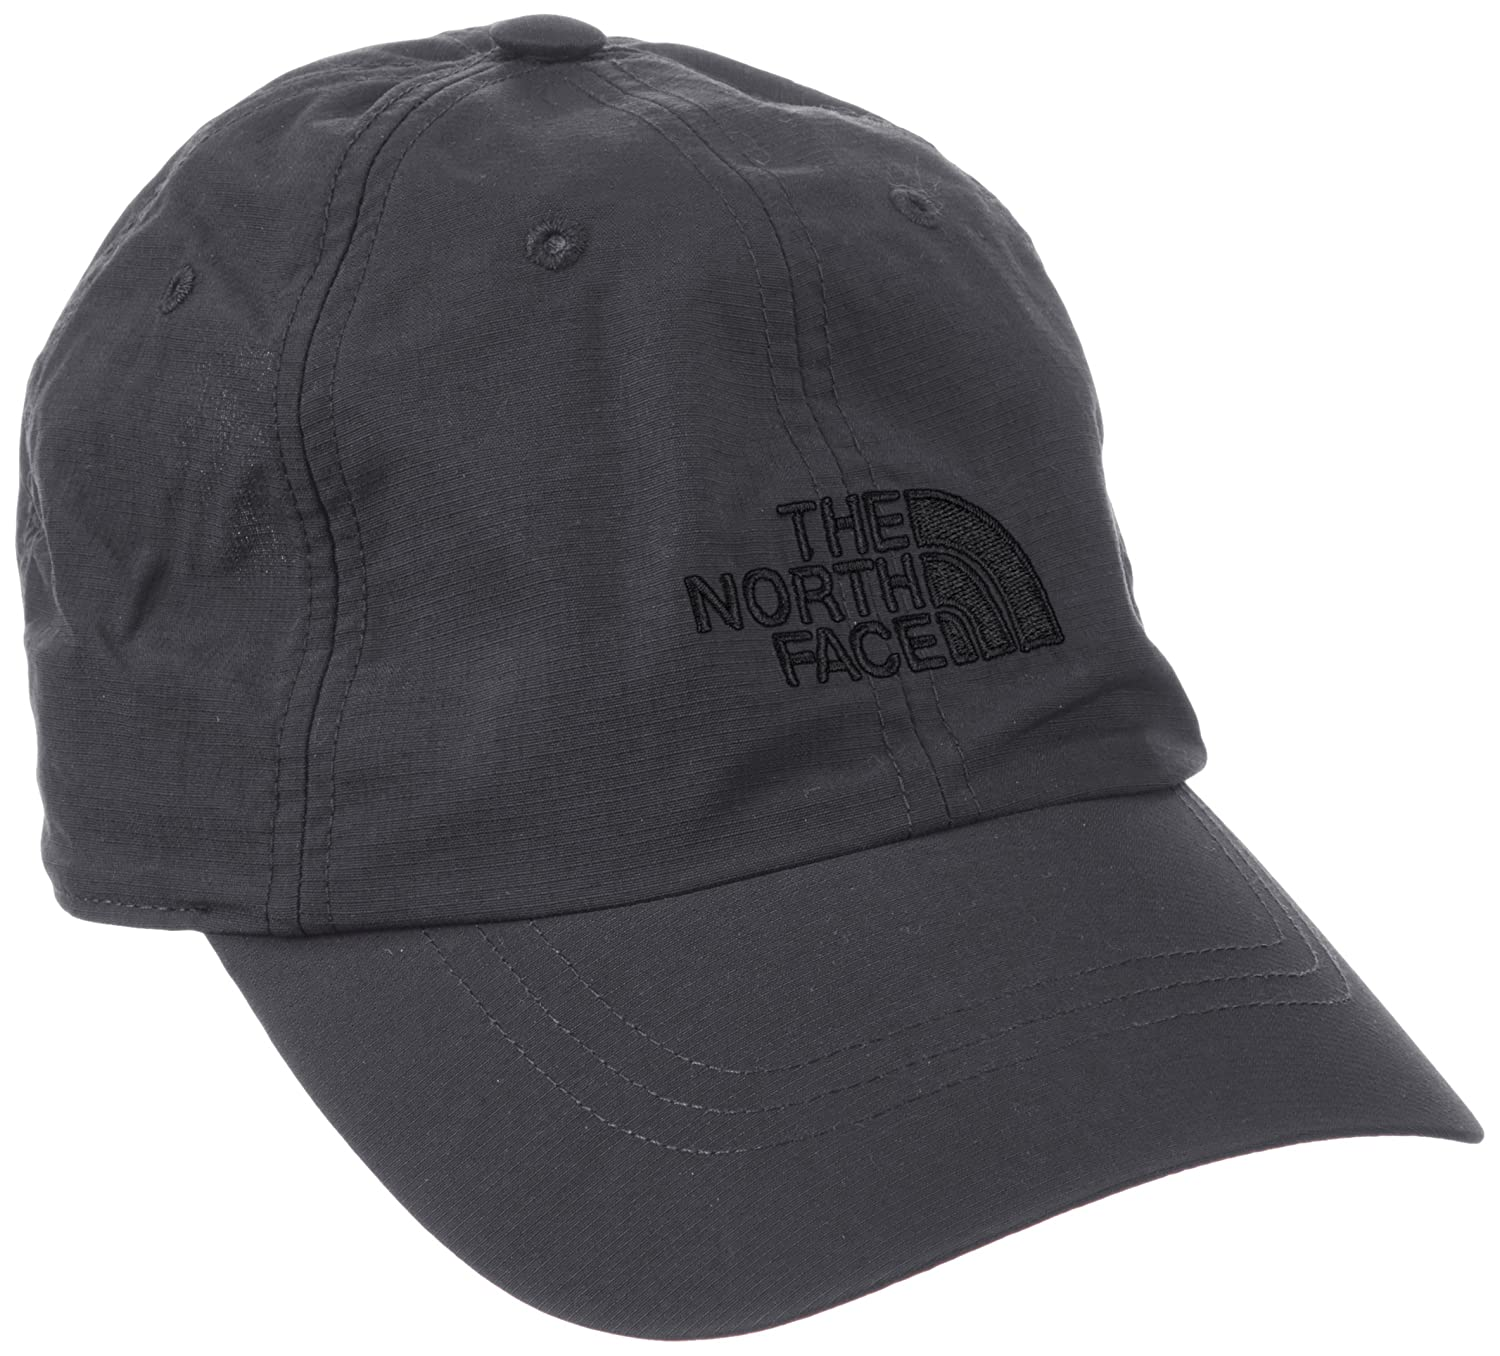 The North Face Horizon Hat Outdoor Hat P19647